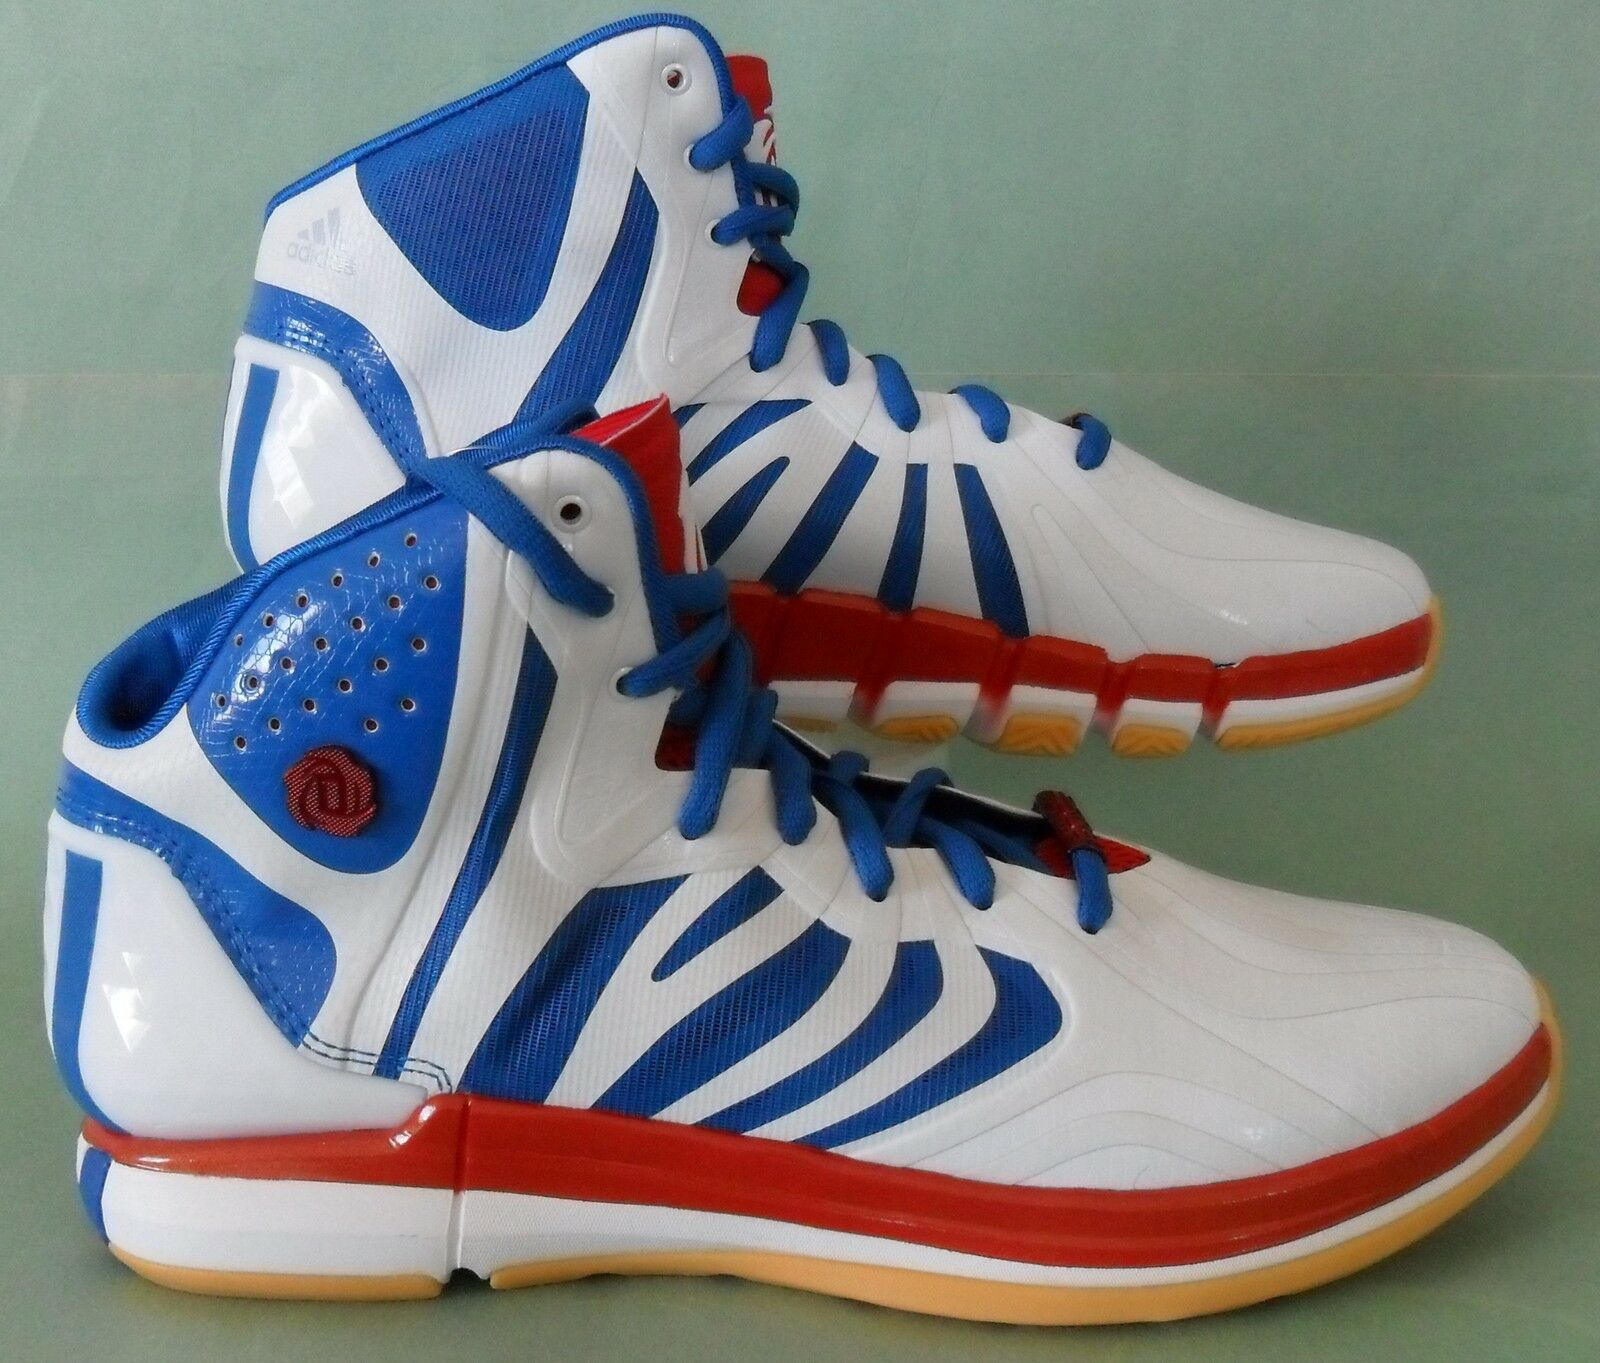 RARE~Adidas D ROSE 4.5 DRAFT LOTTERY Derrick crazyquick Basketball Shoe~Mens 9.5